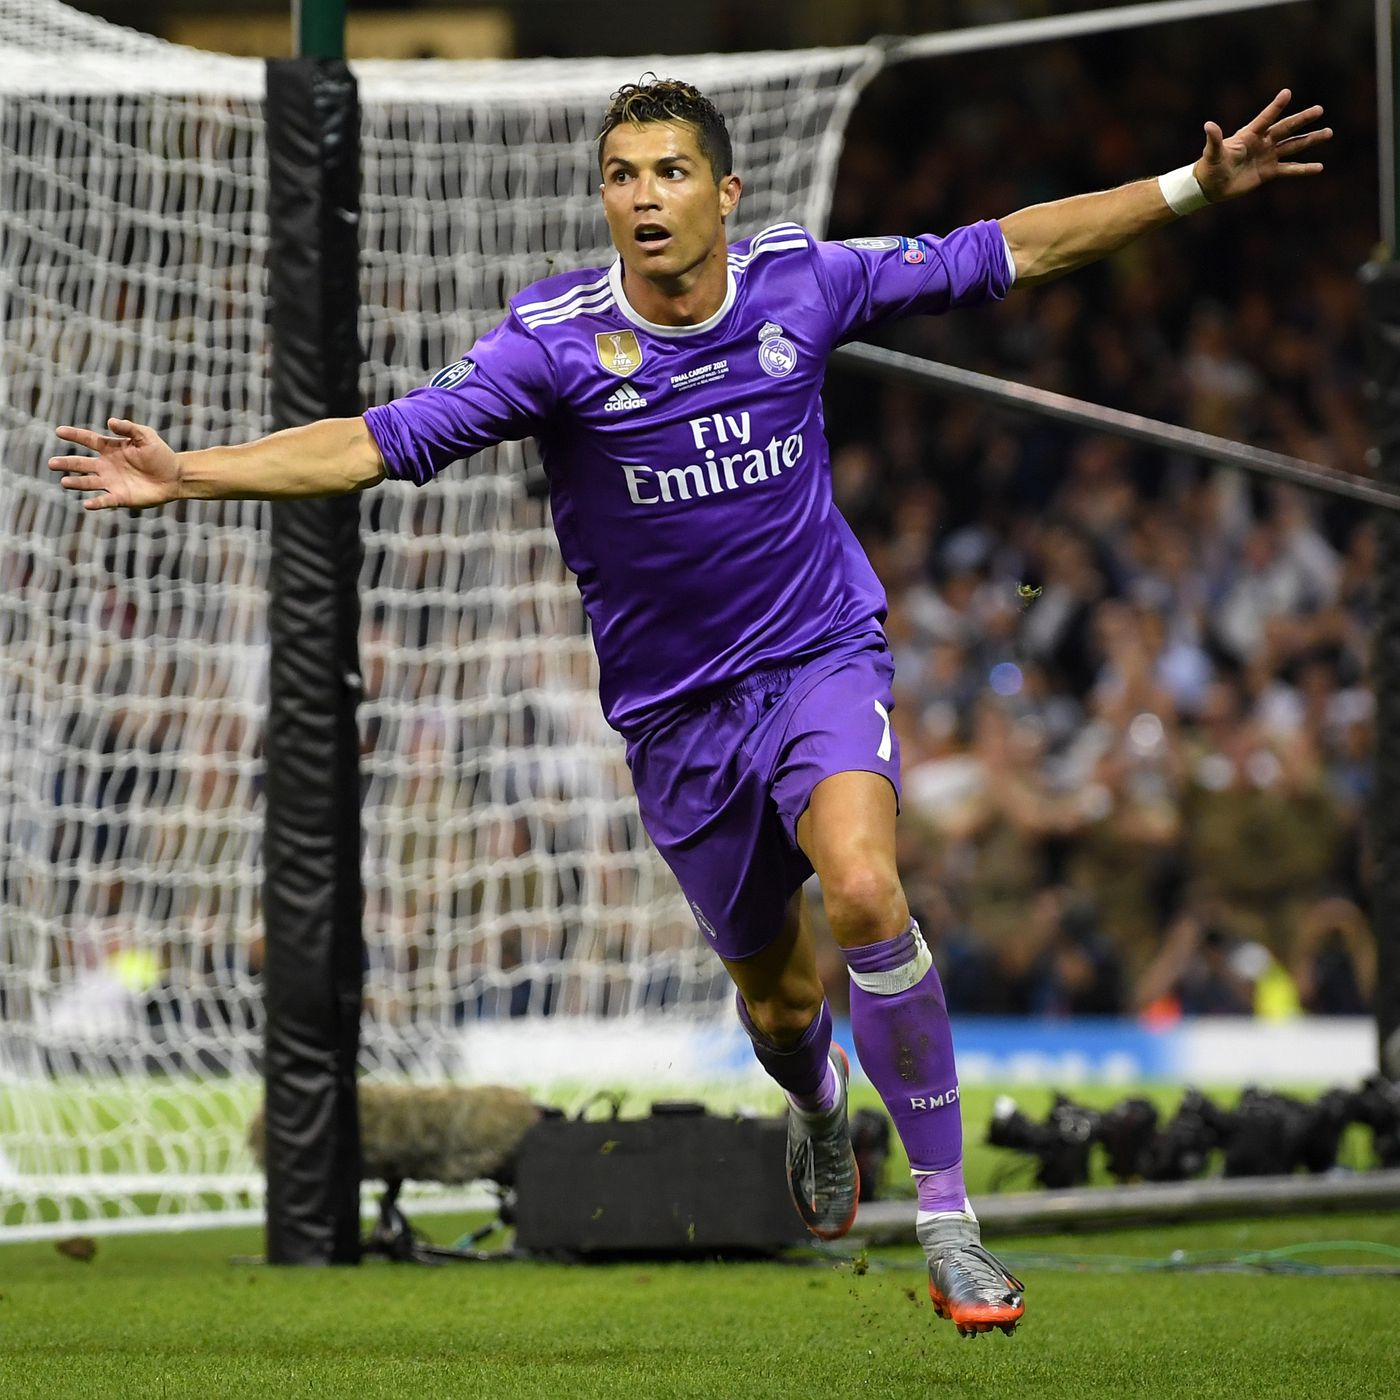 finest selection db506 2d45b Real Madrid vs. Juventus: Final score 4-1, Cristiano Ronaldo ...